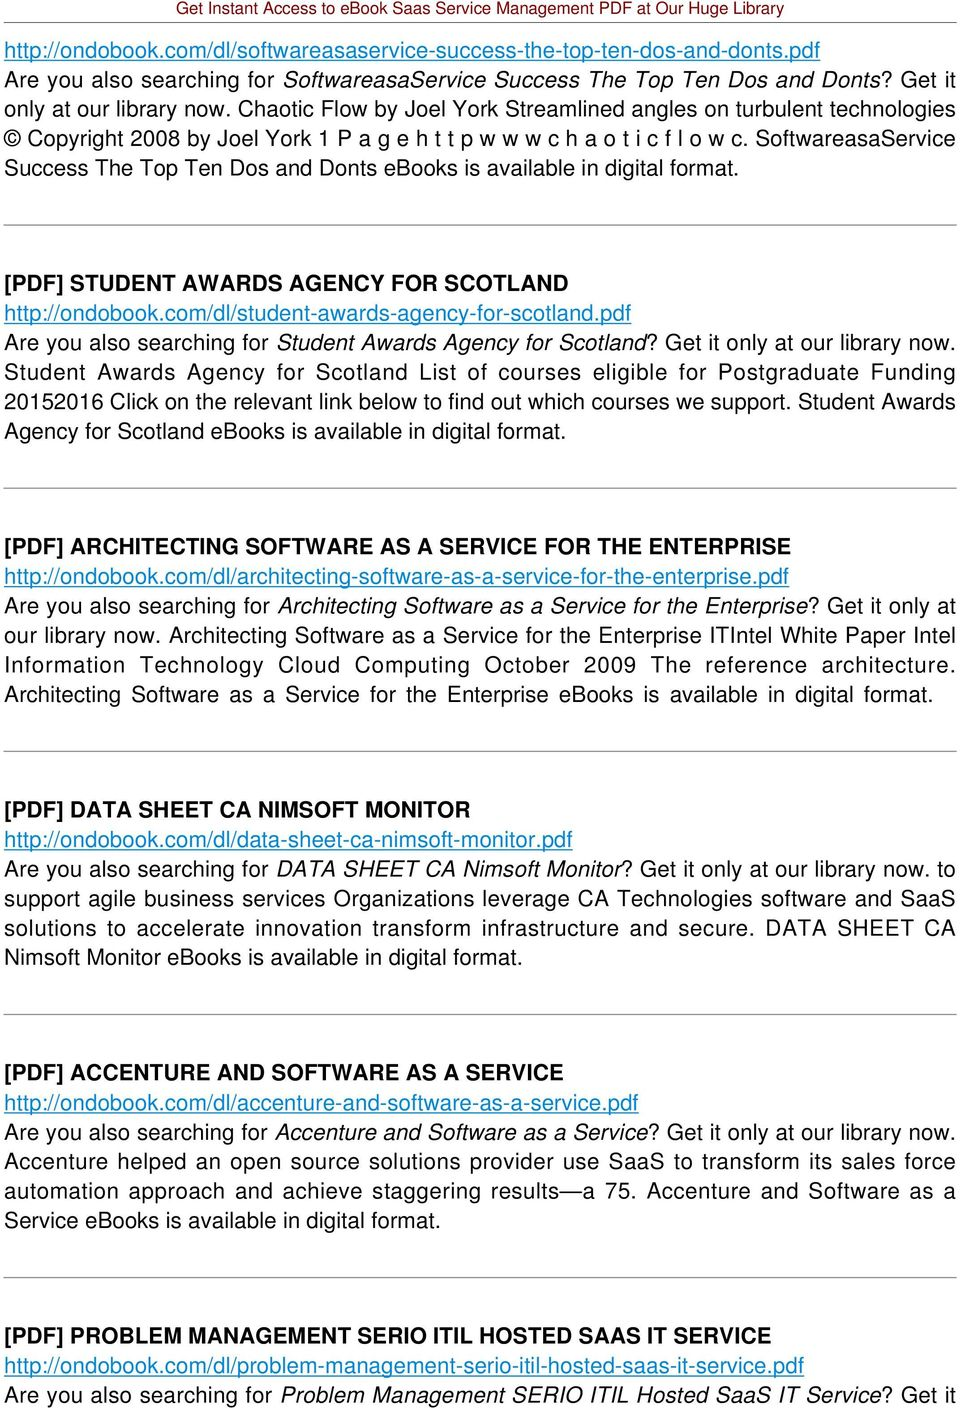 SoftwareasaService Success The Top Ten Dos and Donts ebooks is available in digital format. [PDF] STUDENT AWARDS AGENCY FOR SCOTLAND http://ondobook.com/dl/student-awards-agency-for-scotland.